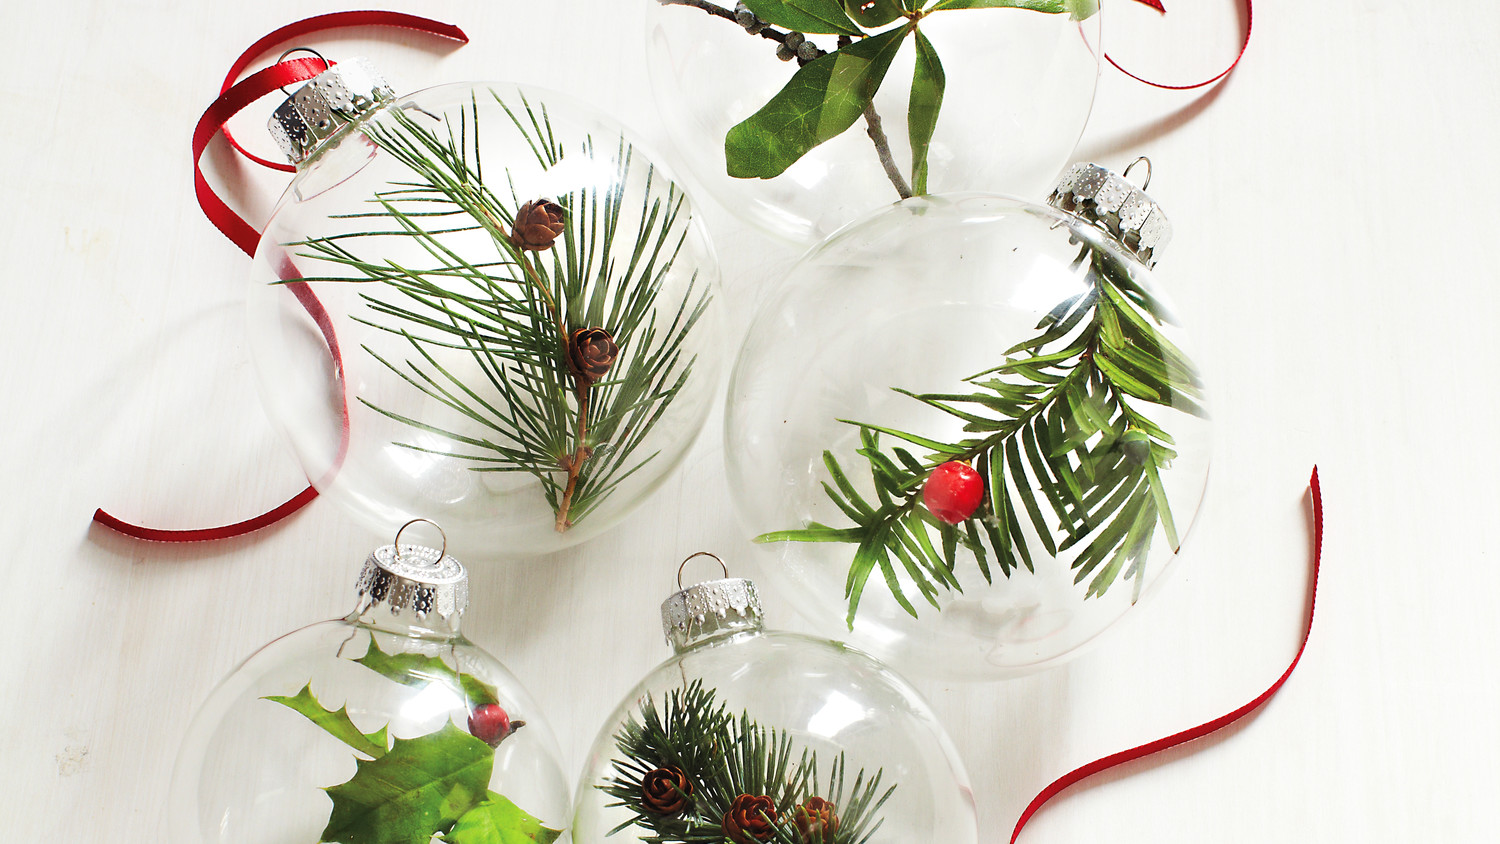 DIY Christmas Ornament Projects | Martha Stewart